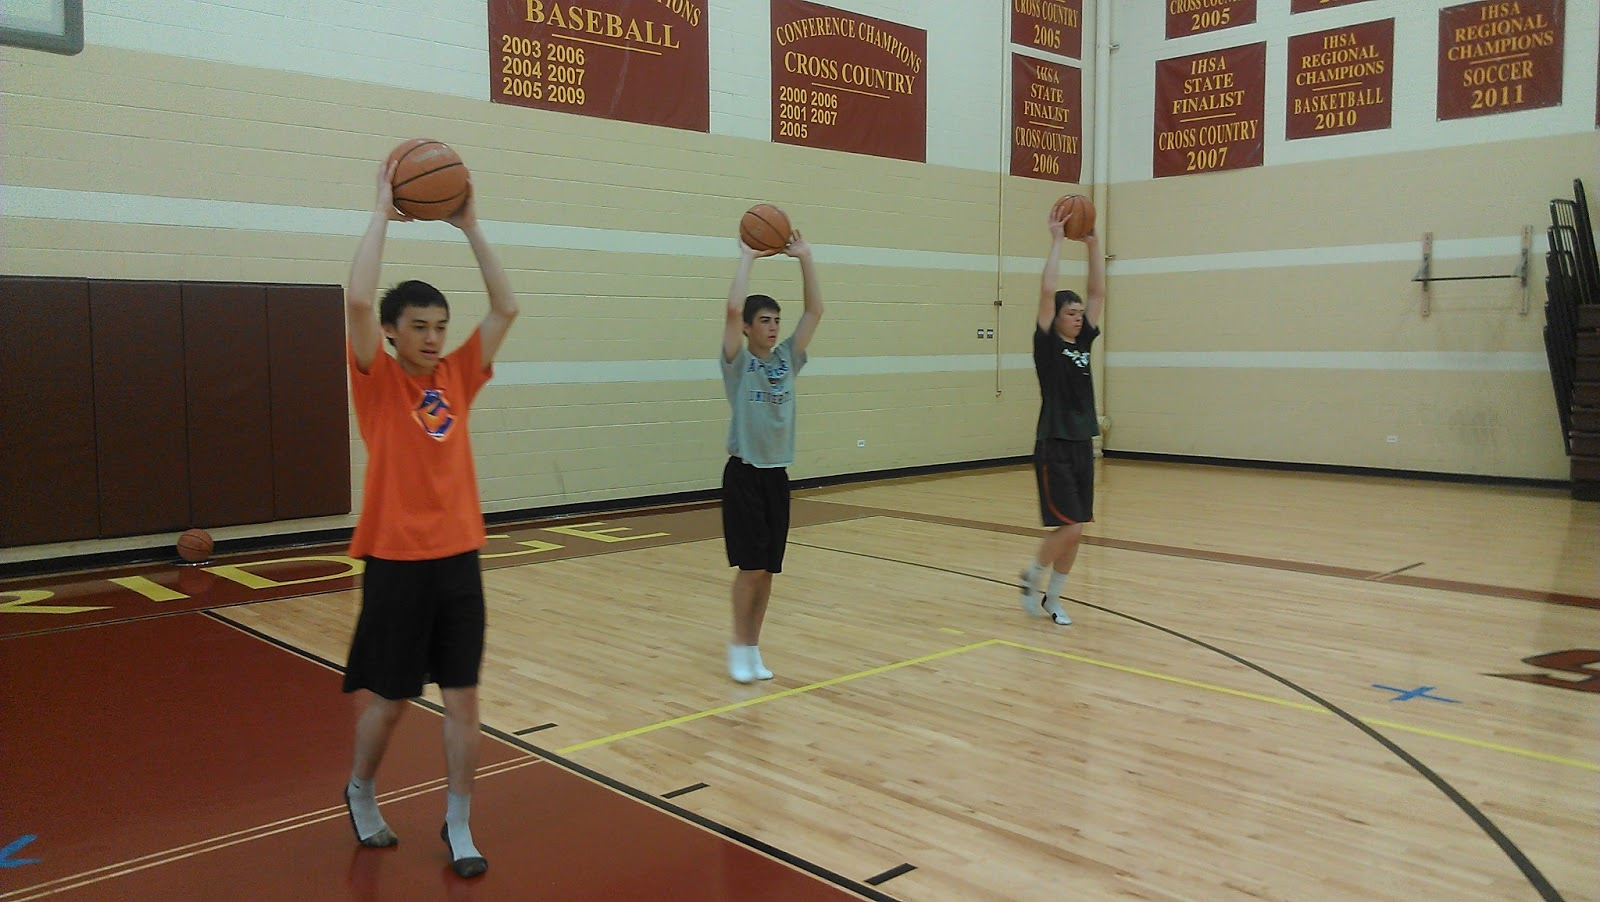 Basketball strength and conditioning program pdf